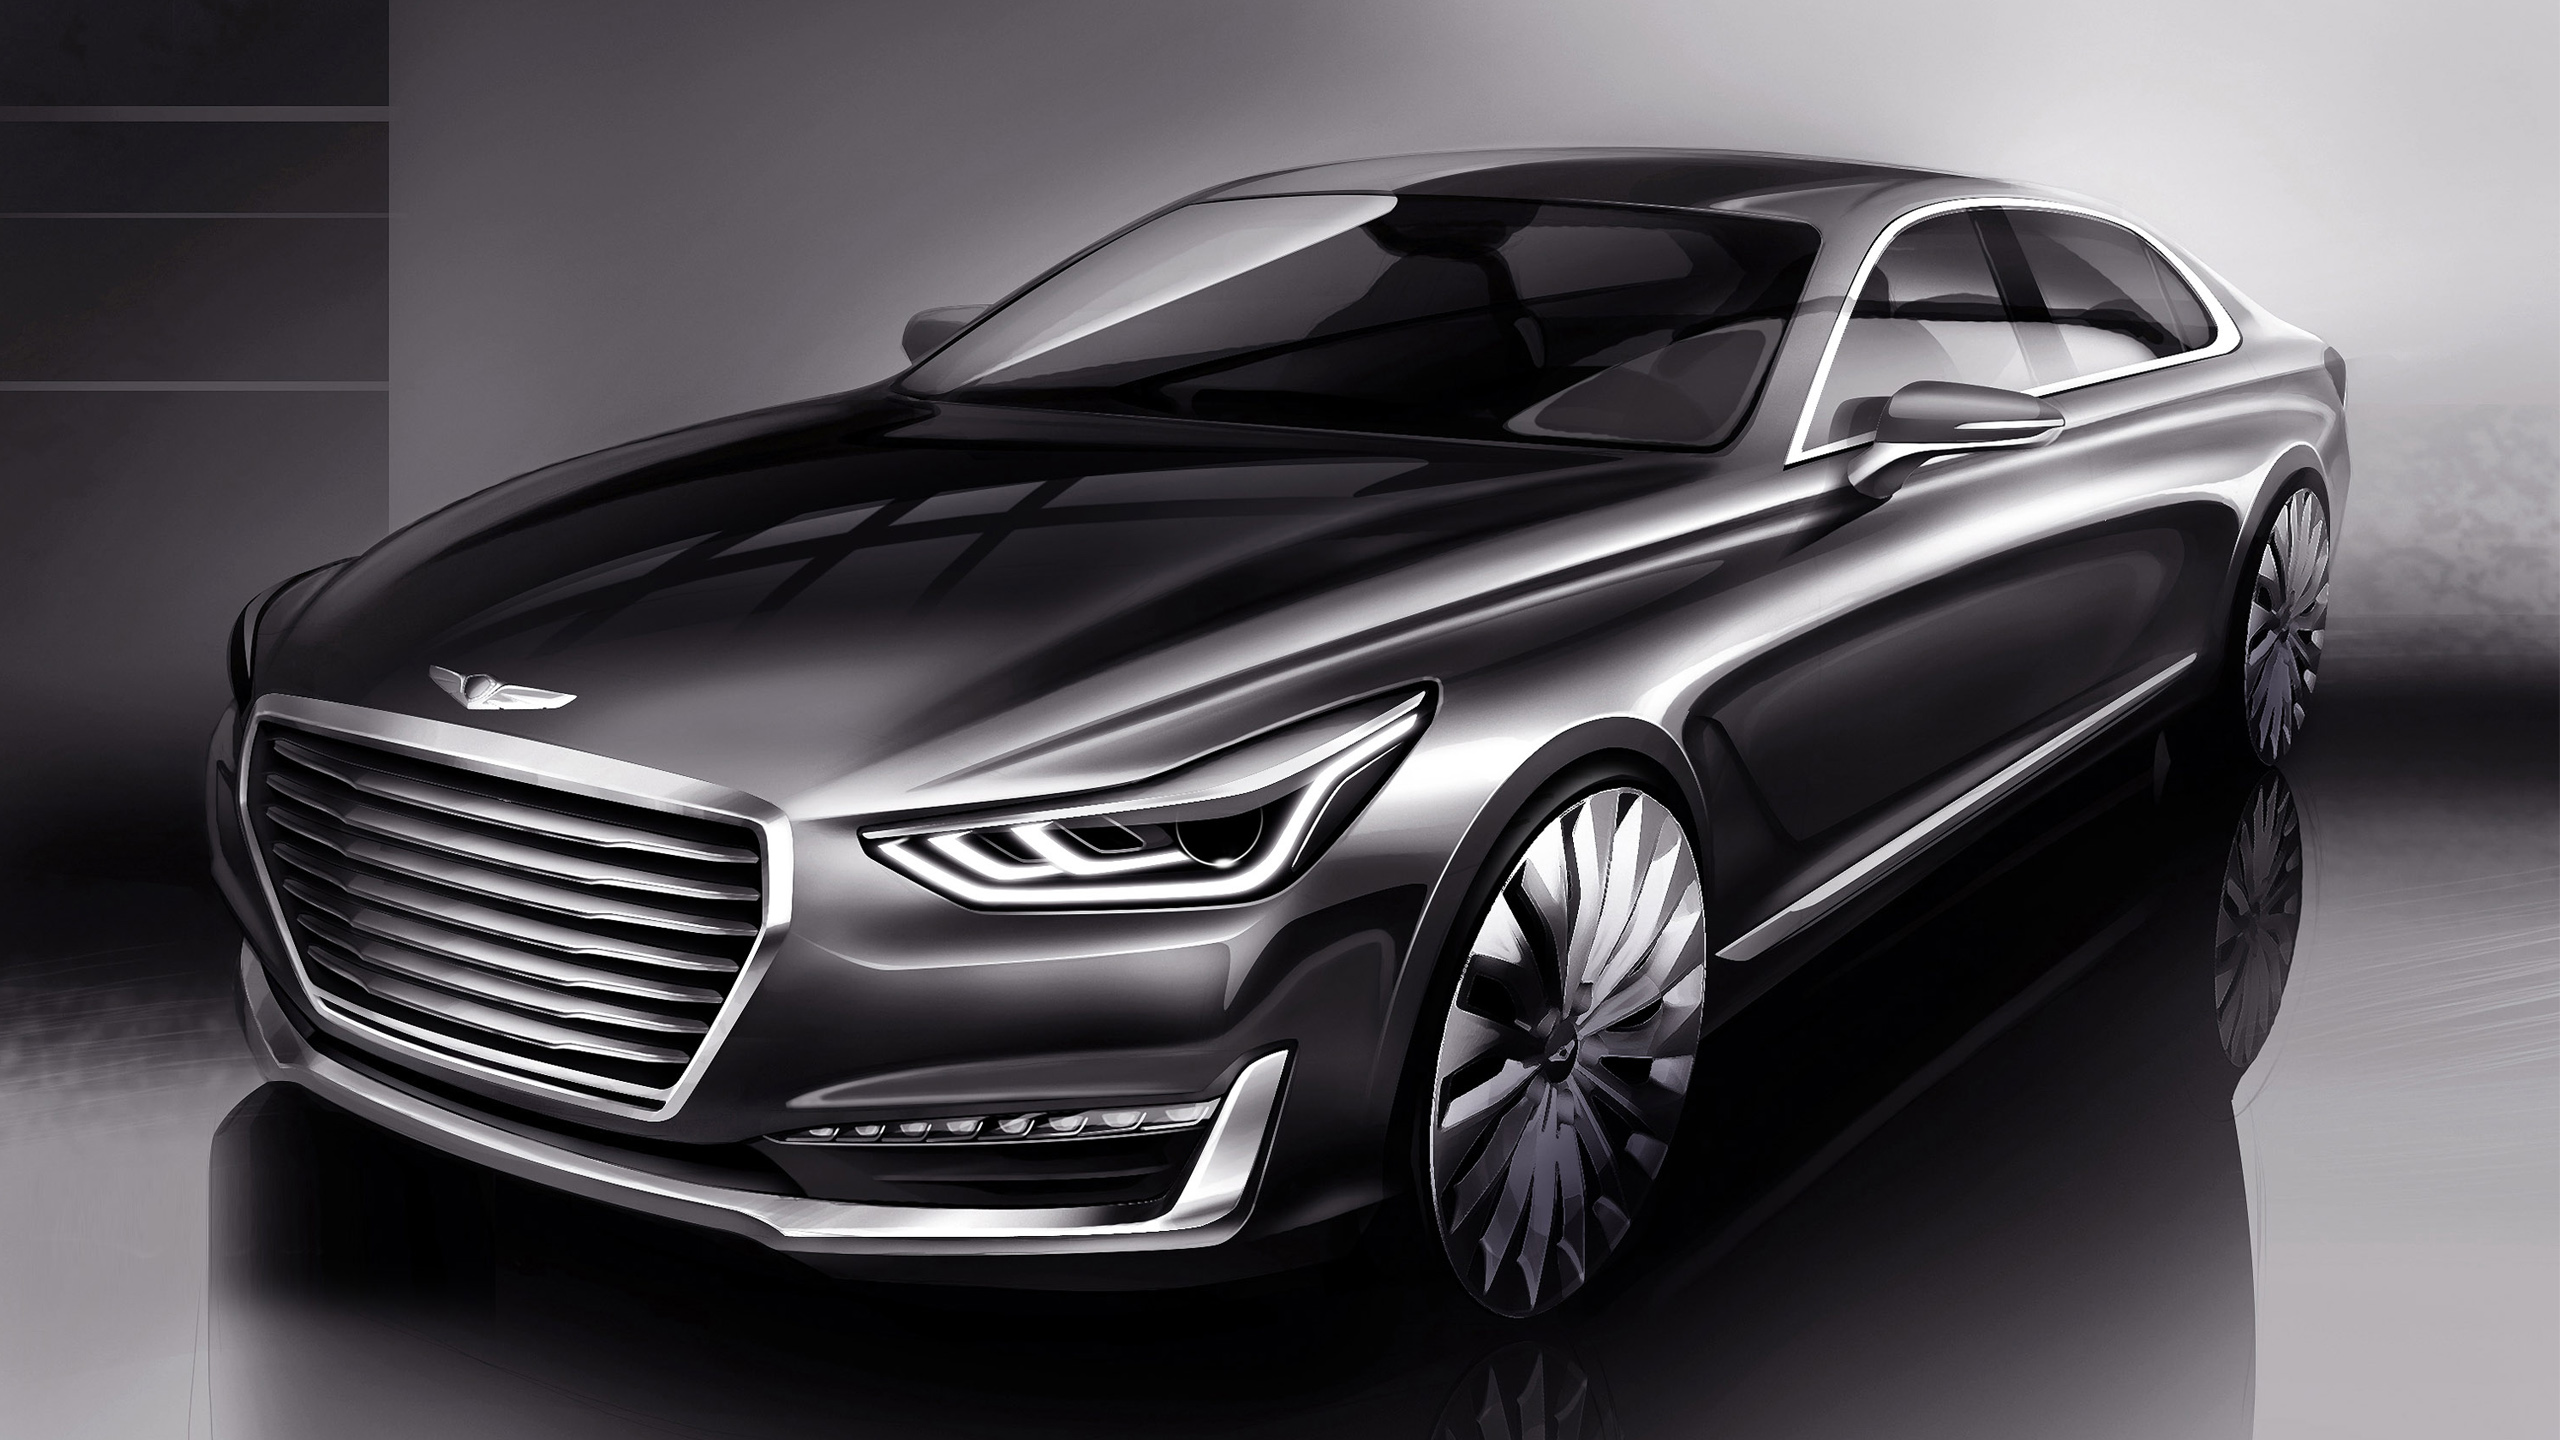 2016 Hyundai Genesis G90 Wallpaper Hd Car Wallpapers Id 5944